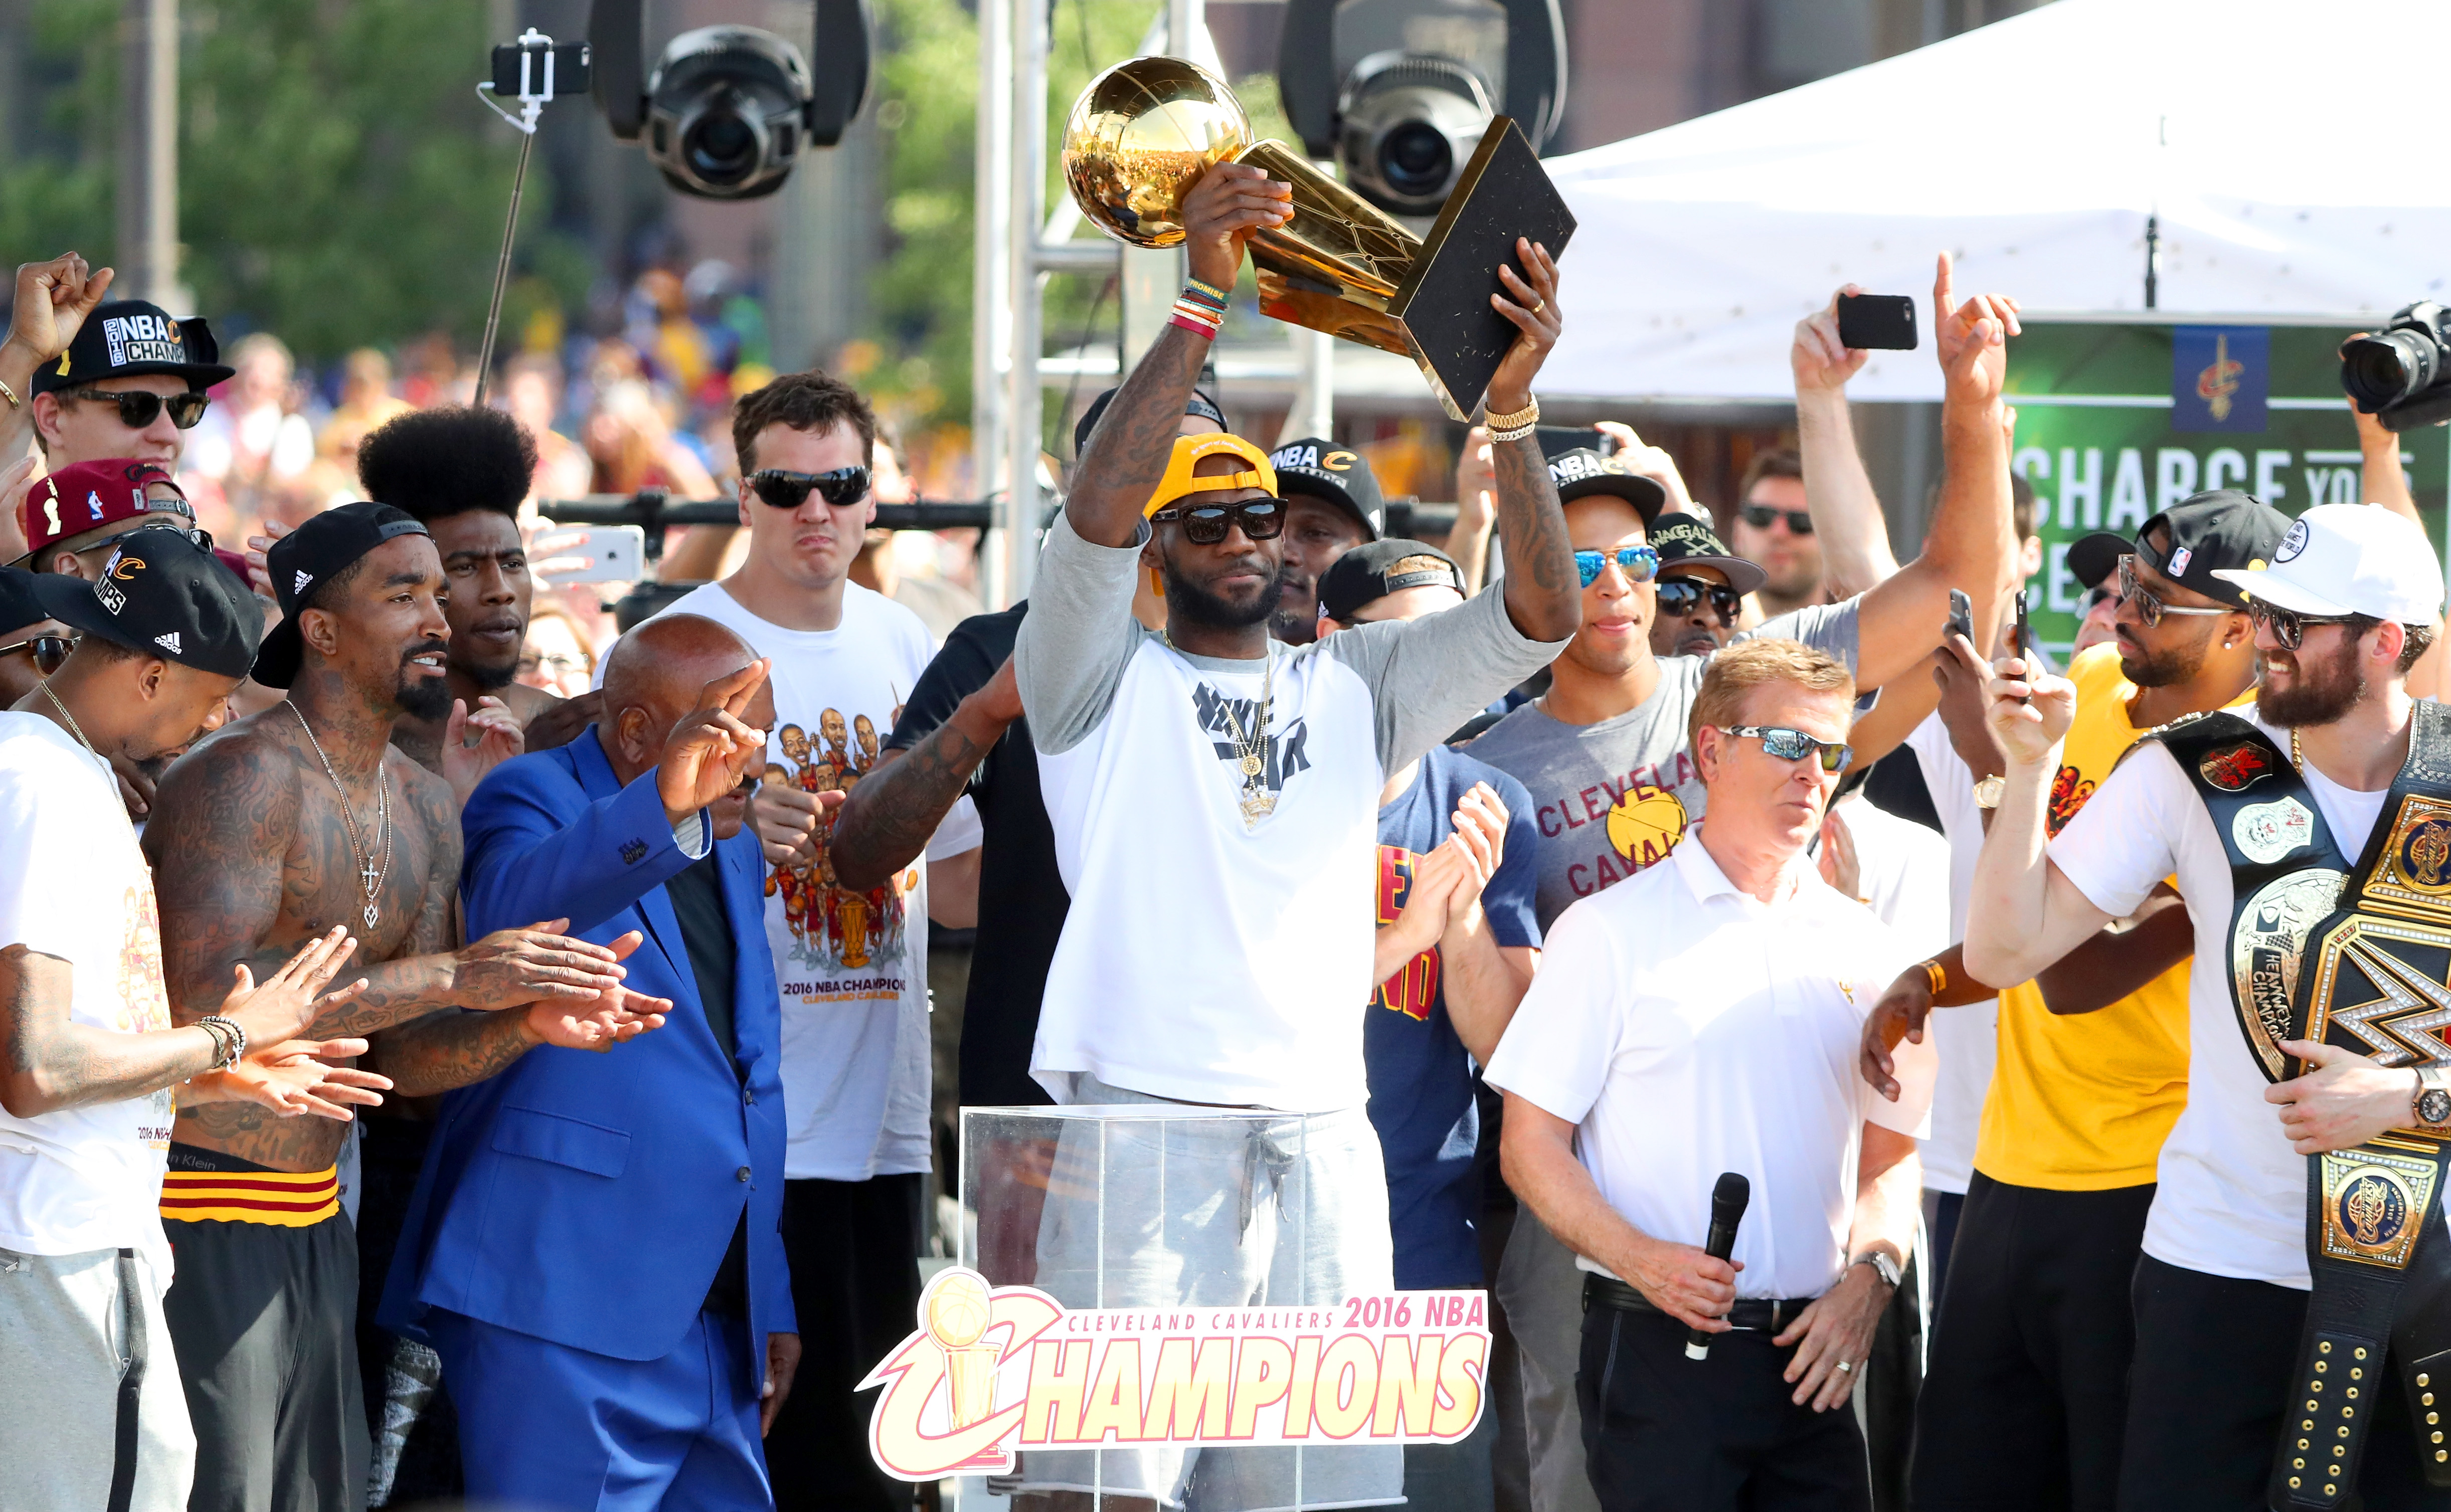 588693212-cleveland-cavaliers-victory-parade-and-rally.jpg